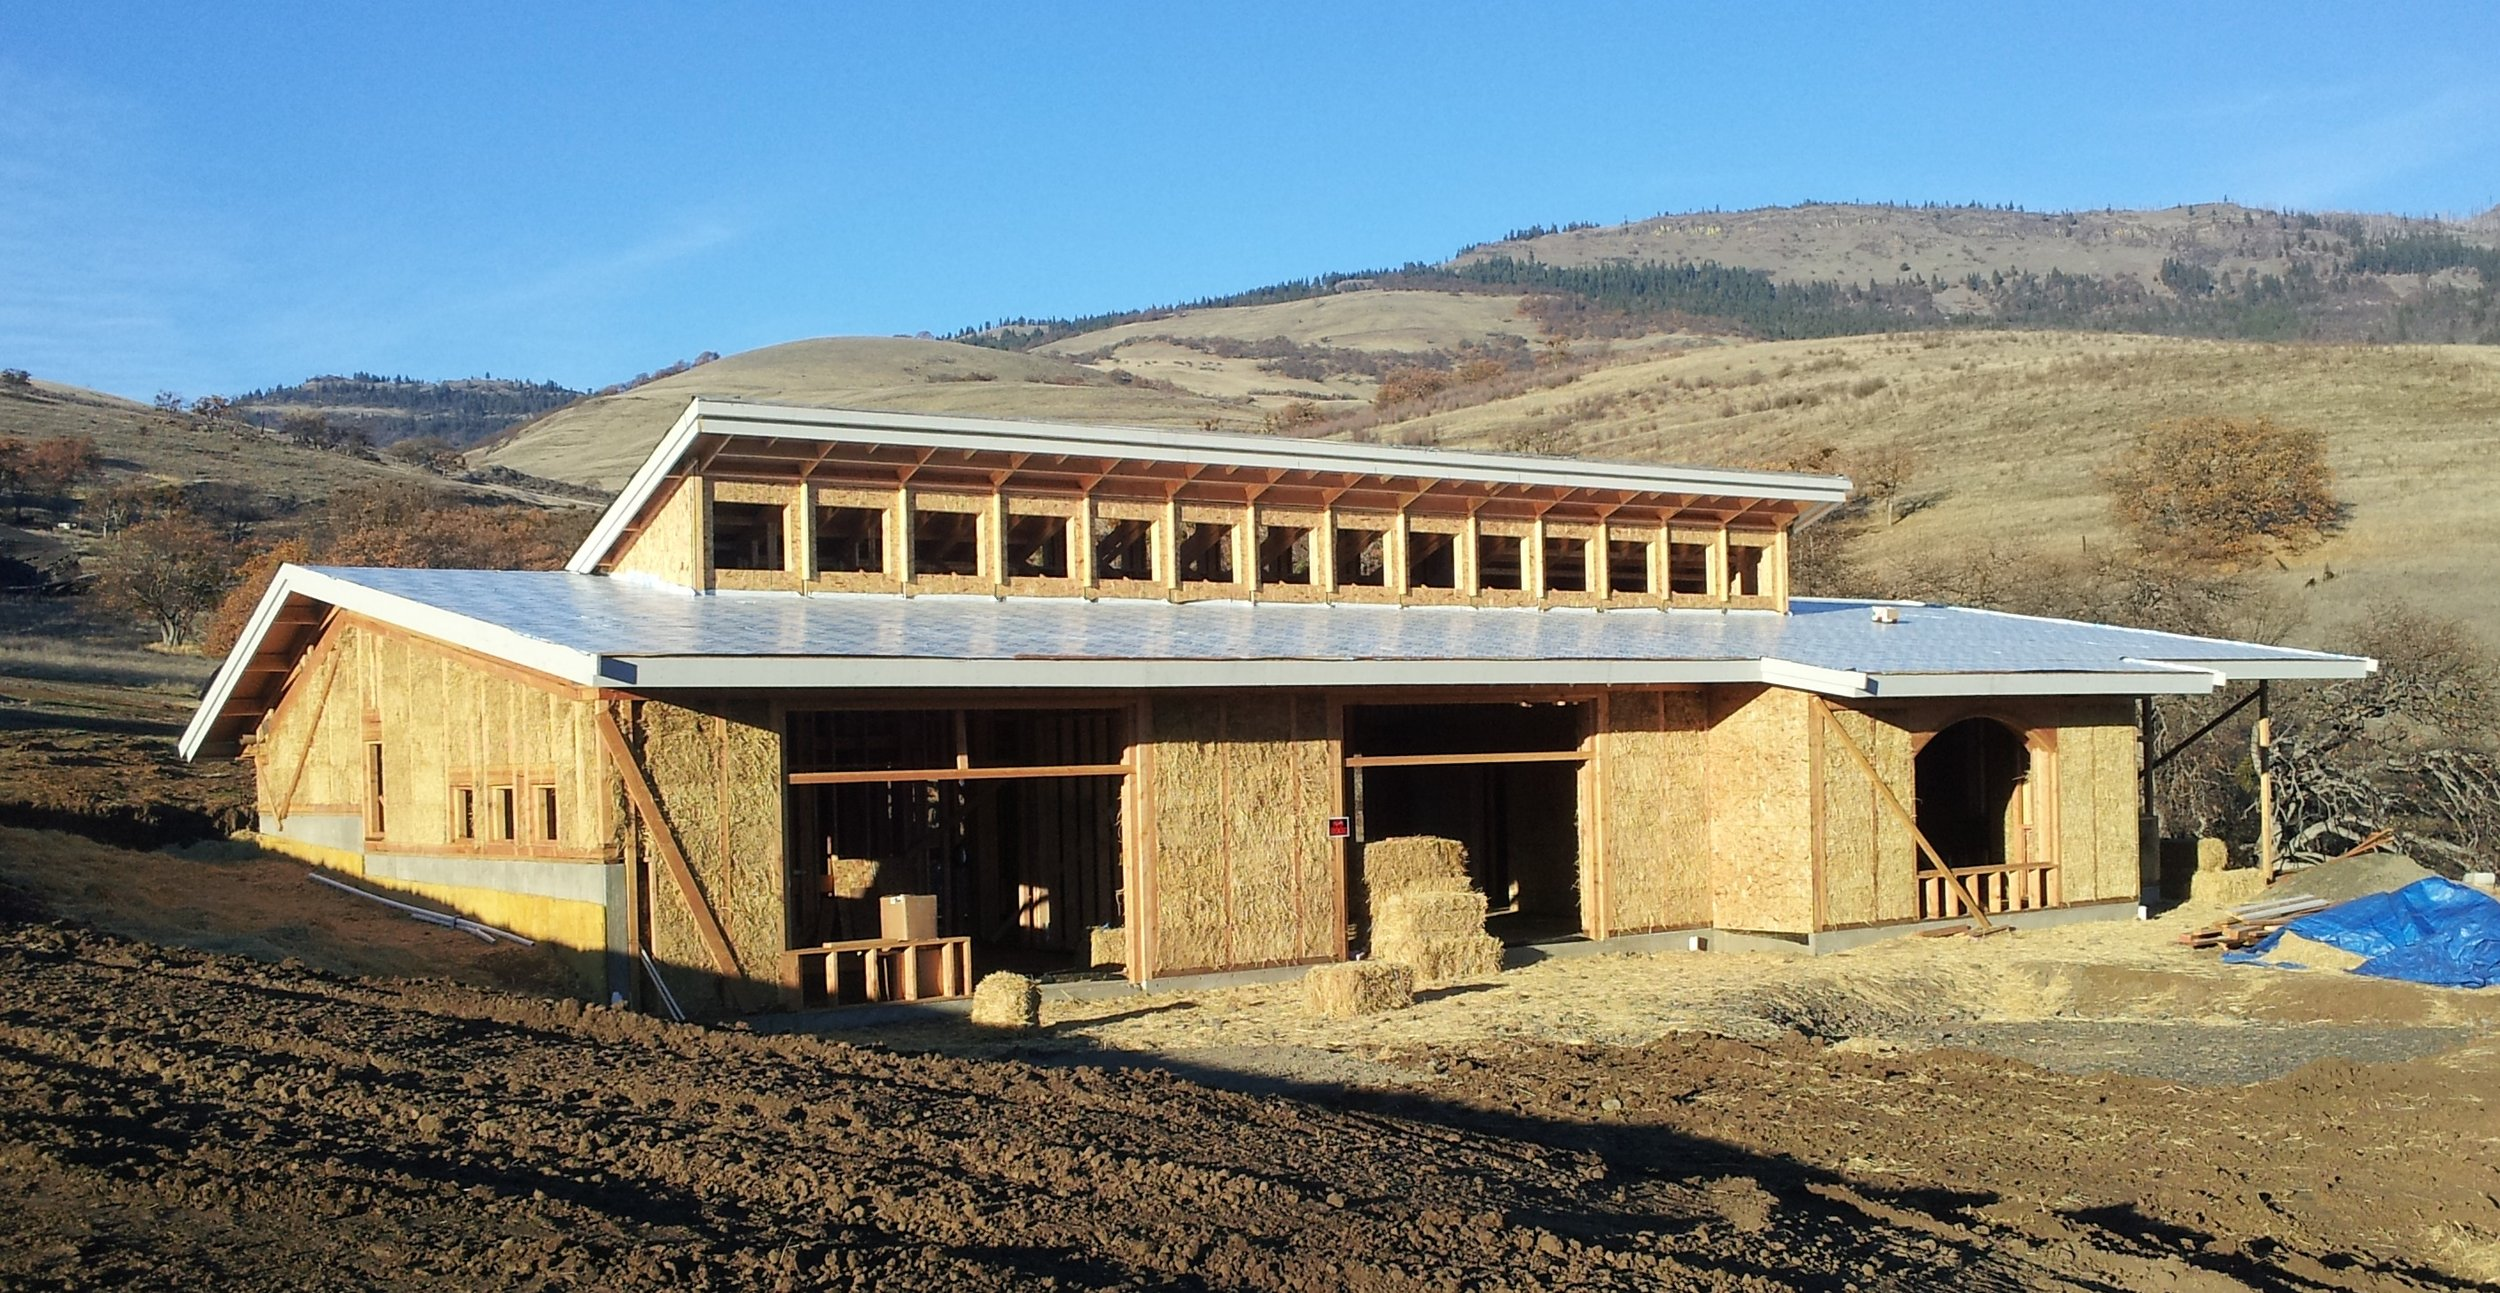 Passive solar straw bale house uses both straw bale shear wall and interior partition shear walls.  Lime exterior and interior plasters.